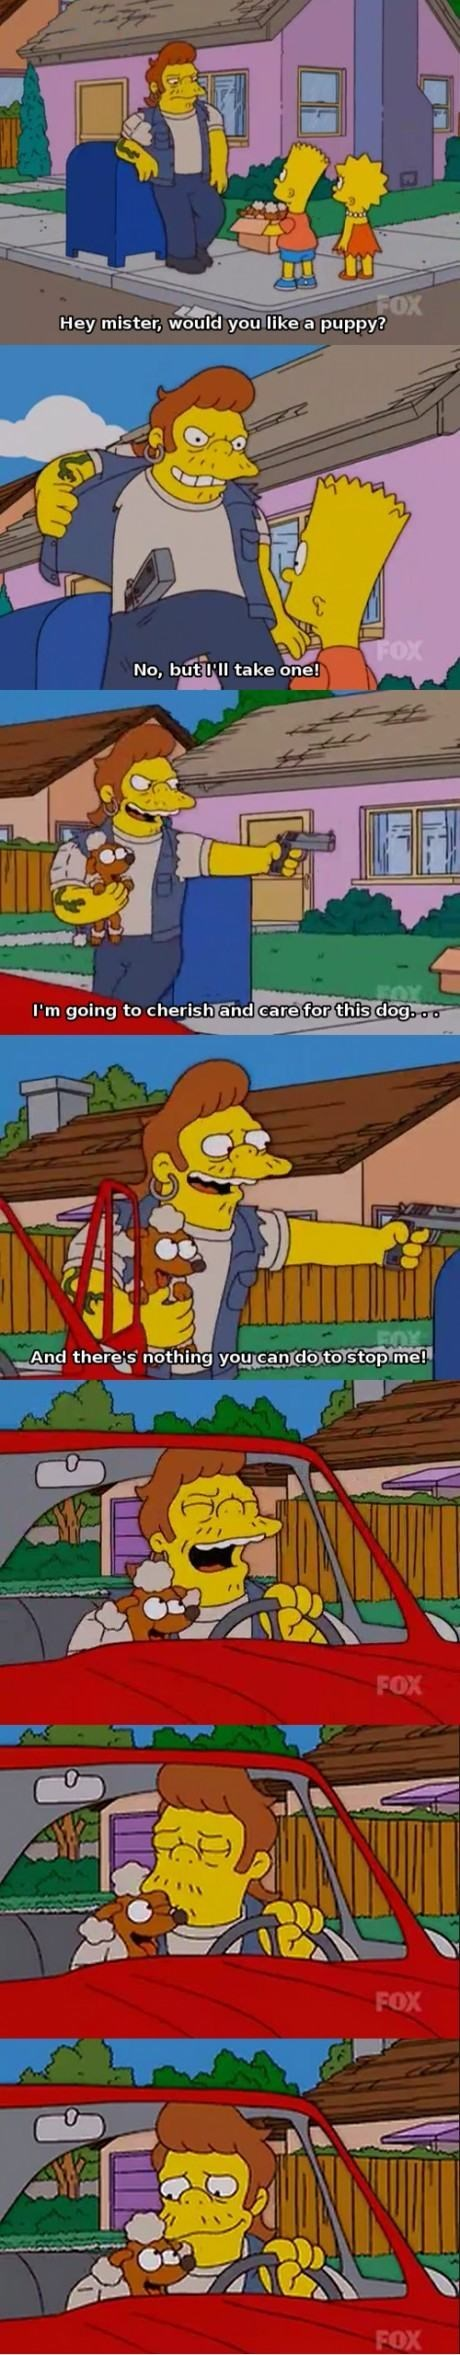 puppies,the simpsons,stealing